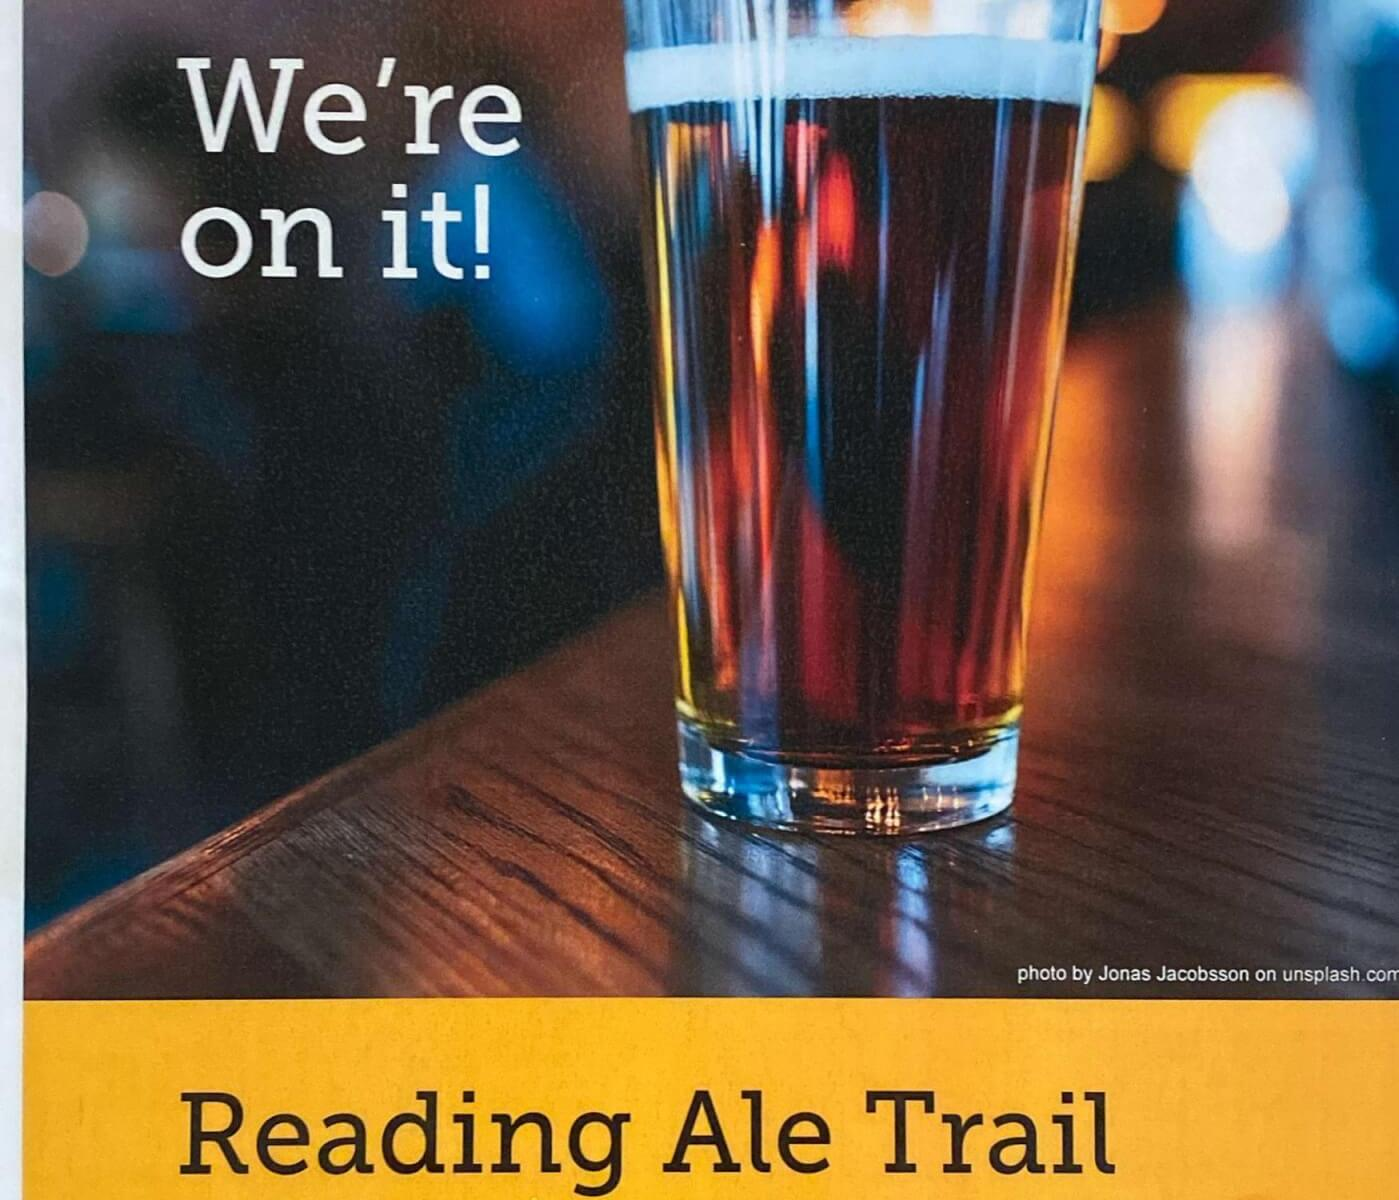 Reading Ale Trail...we're on it